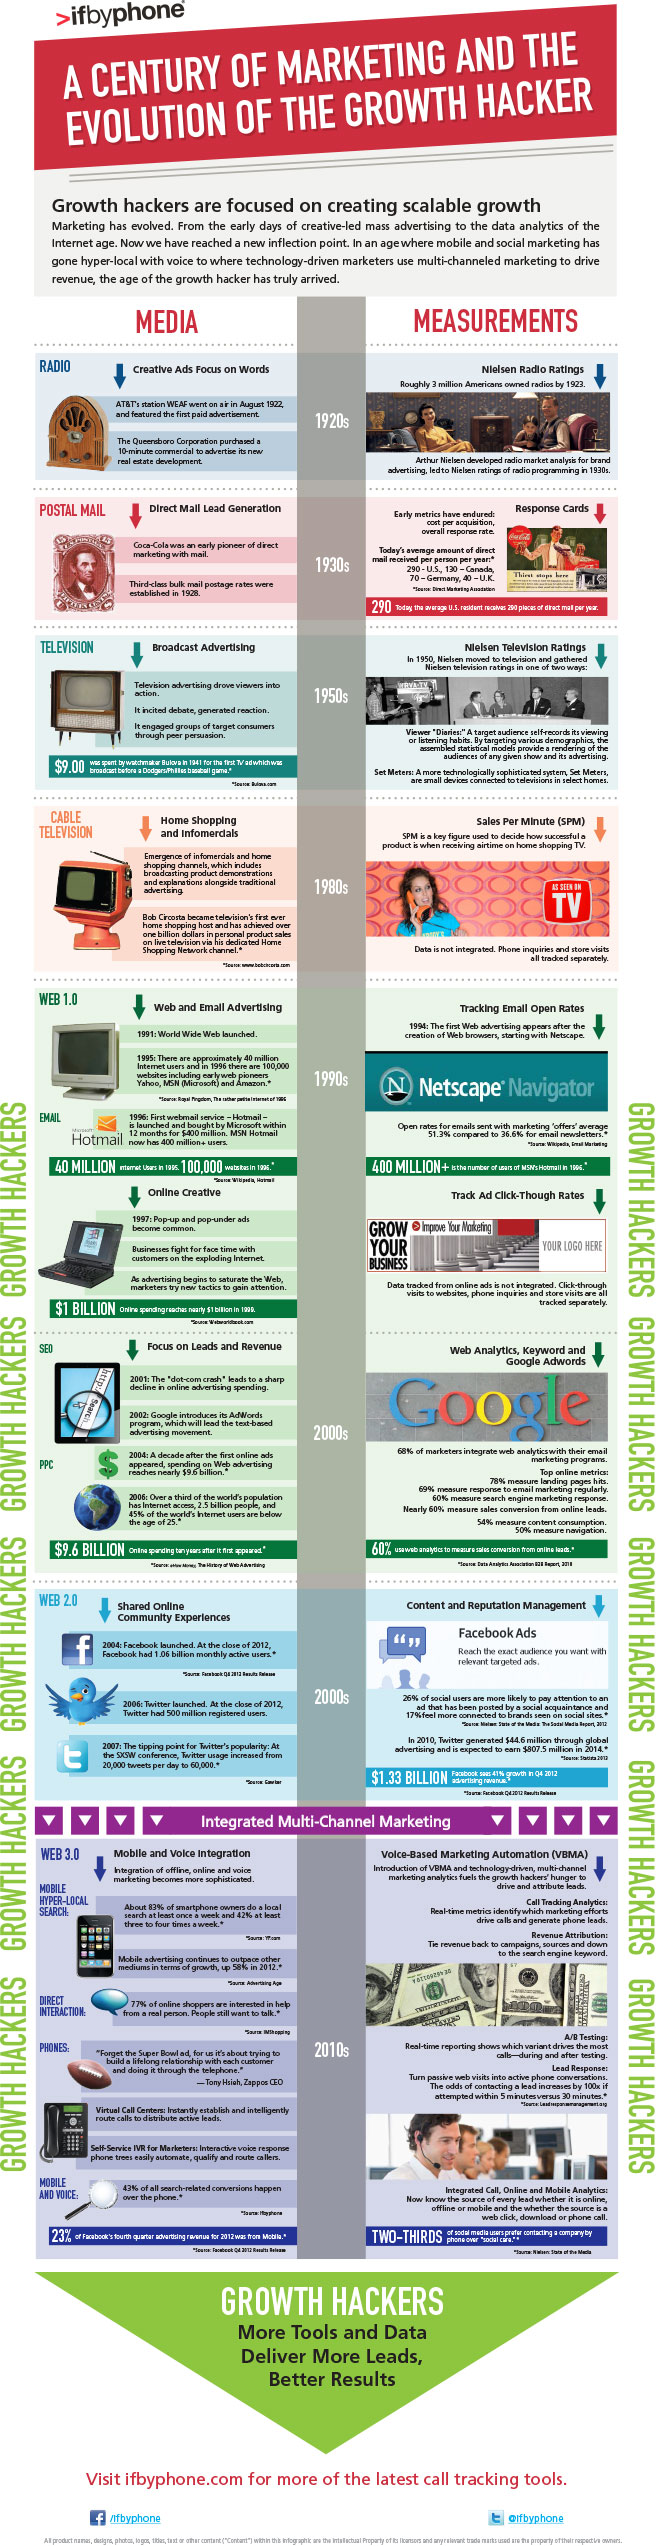 ifbyphone-growth-hacker-infographic_final_blog